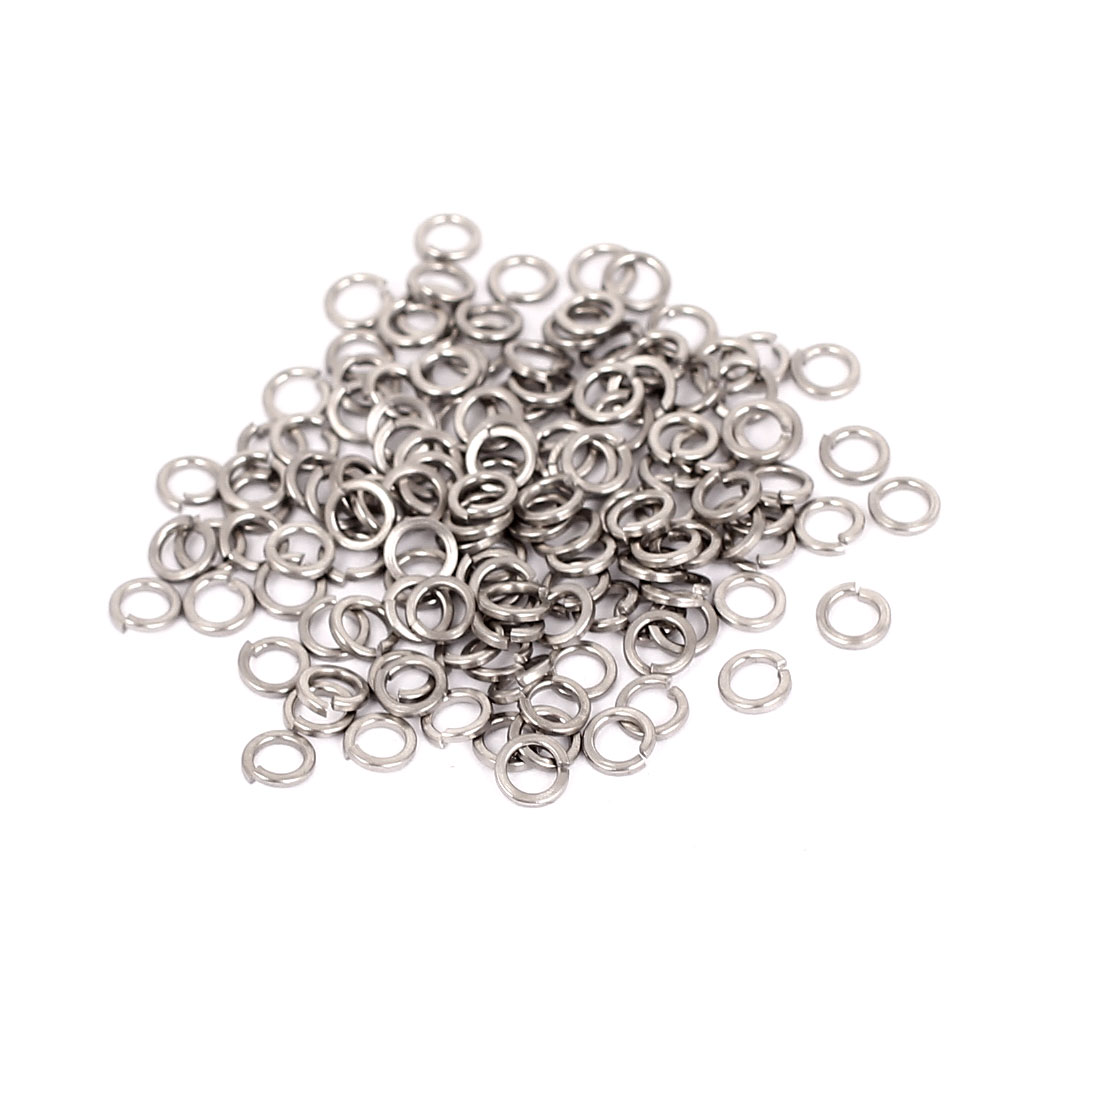 100 Pcs/lot ID 2.5mm OD 4mm T 0.6mm 304 Stainless Steel Split Lock Spring Washers Screw Spacer Pad(China (Mainland))